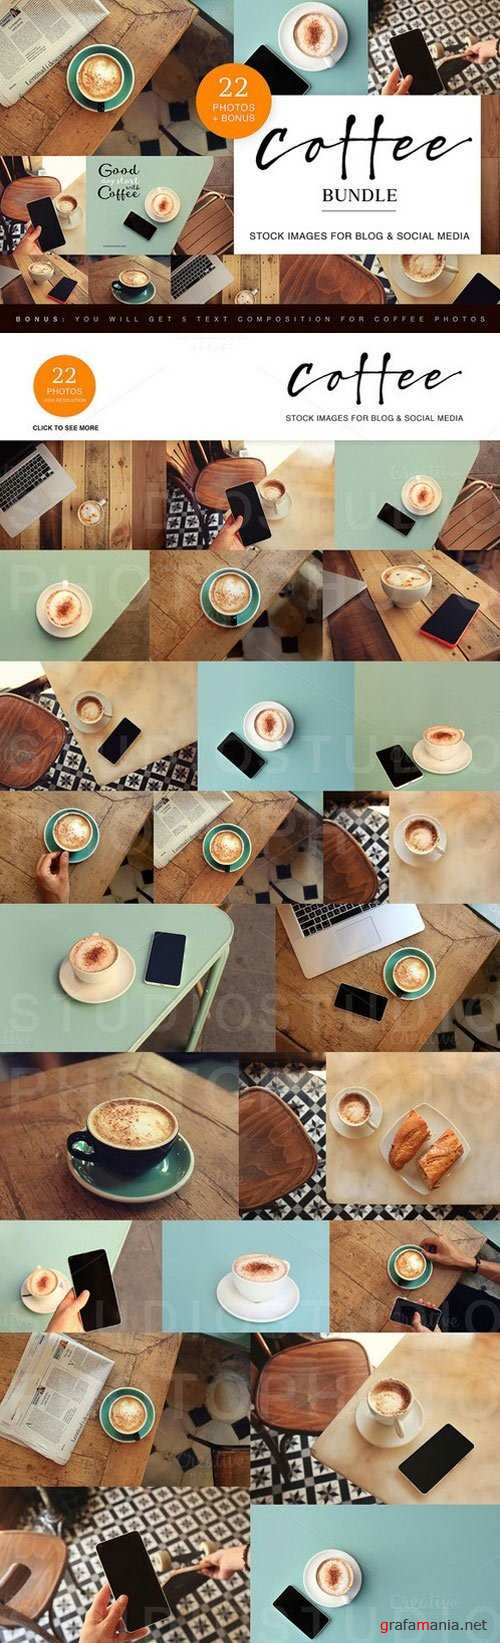 Coffee bundle/ Images for Blogs - 864080